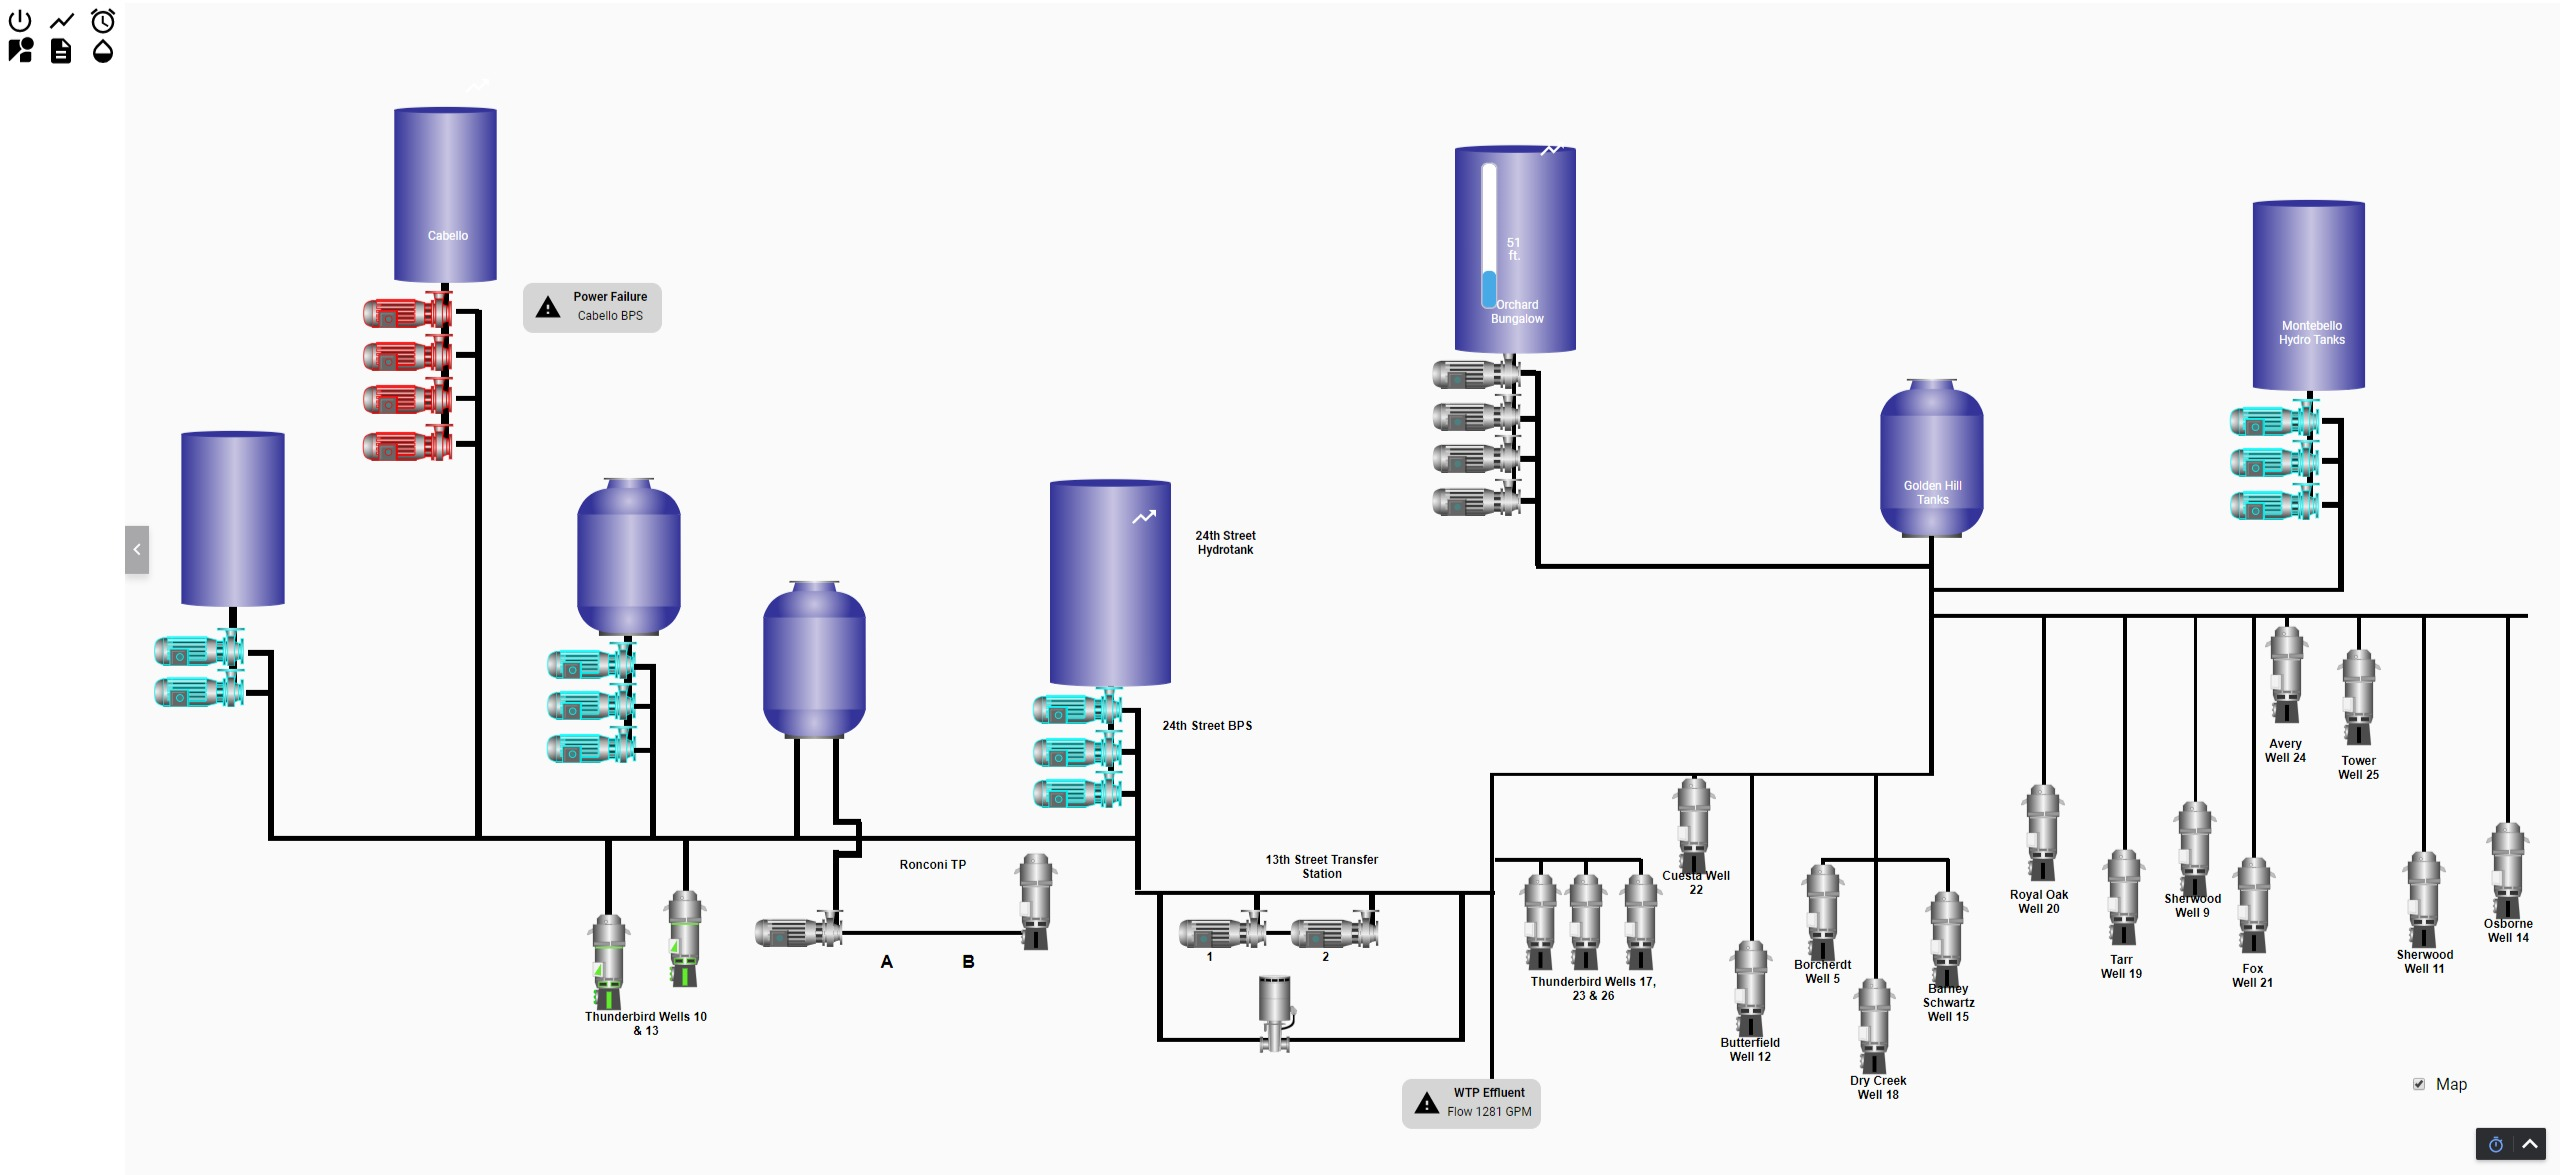 Water Distribution SCADA - Ignition